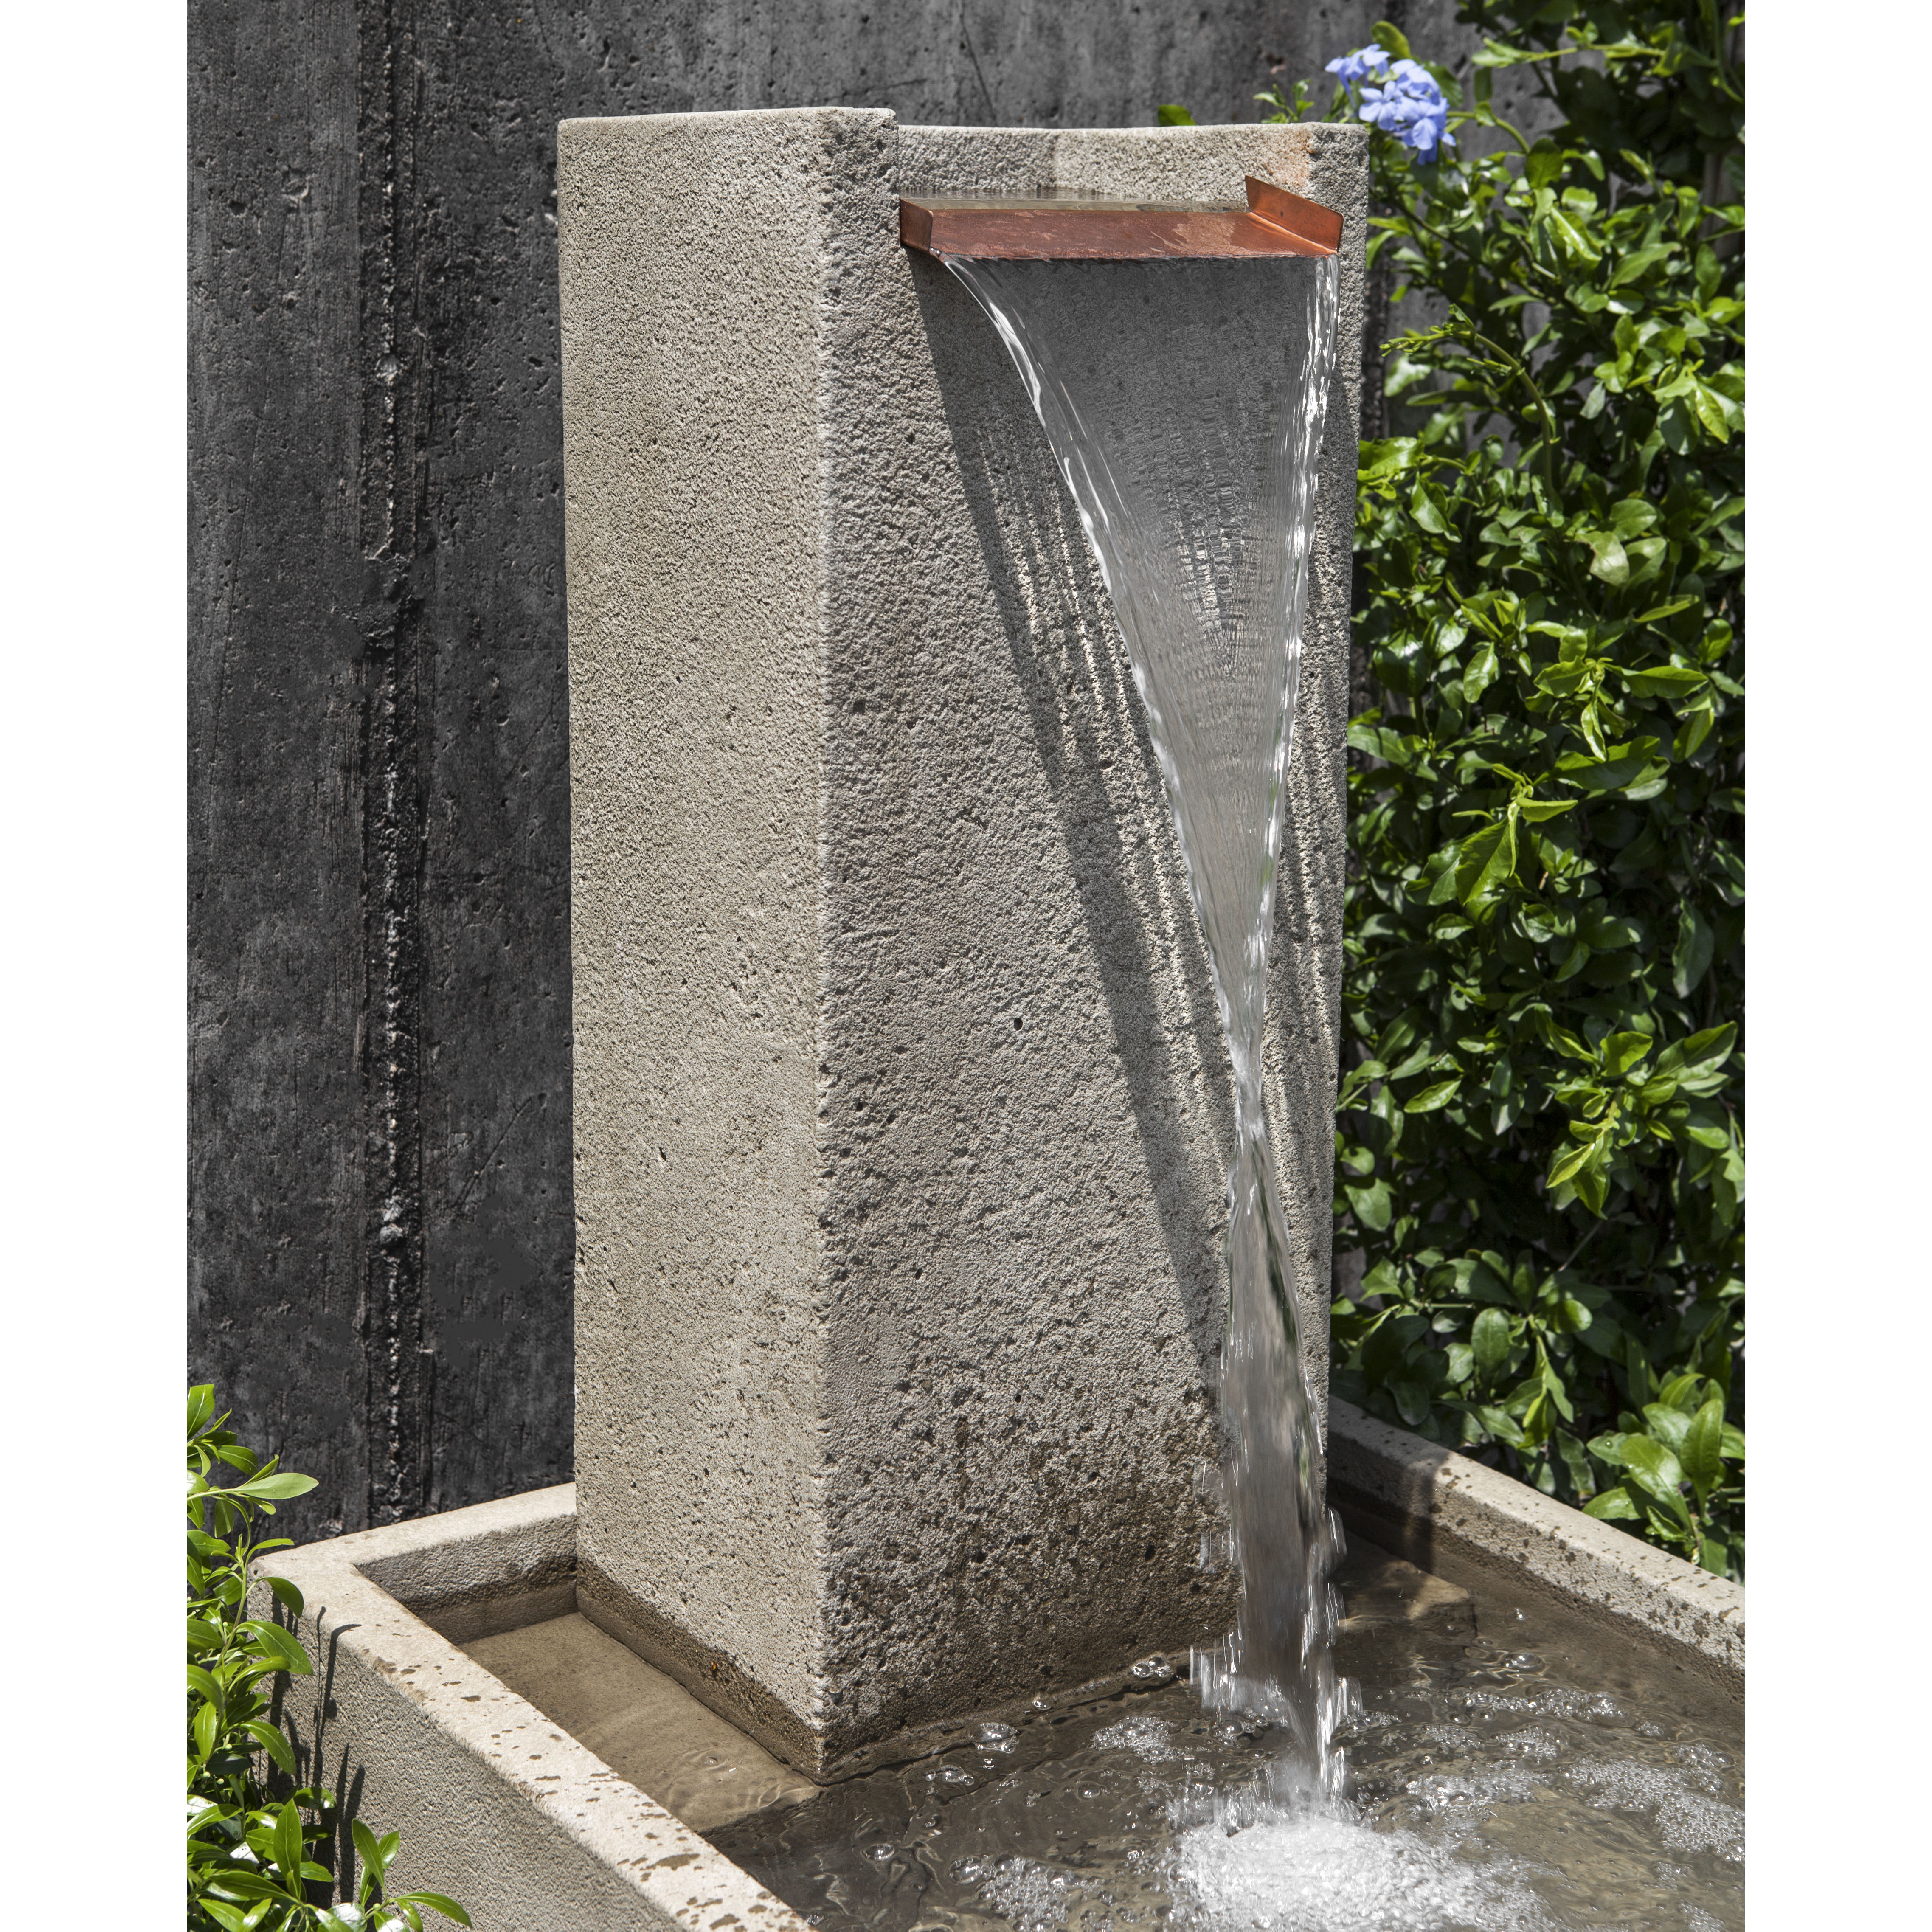 Campania - Falling Water Fountain 4